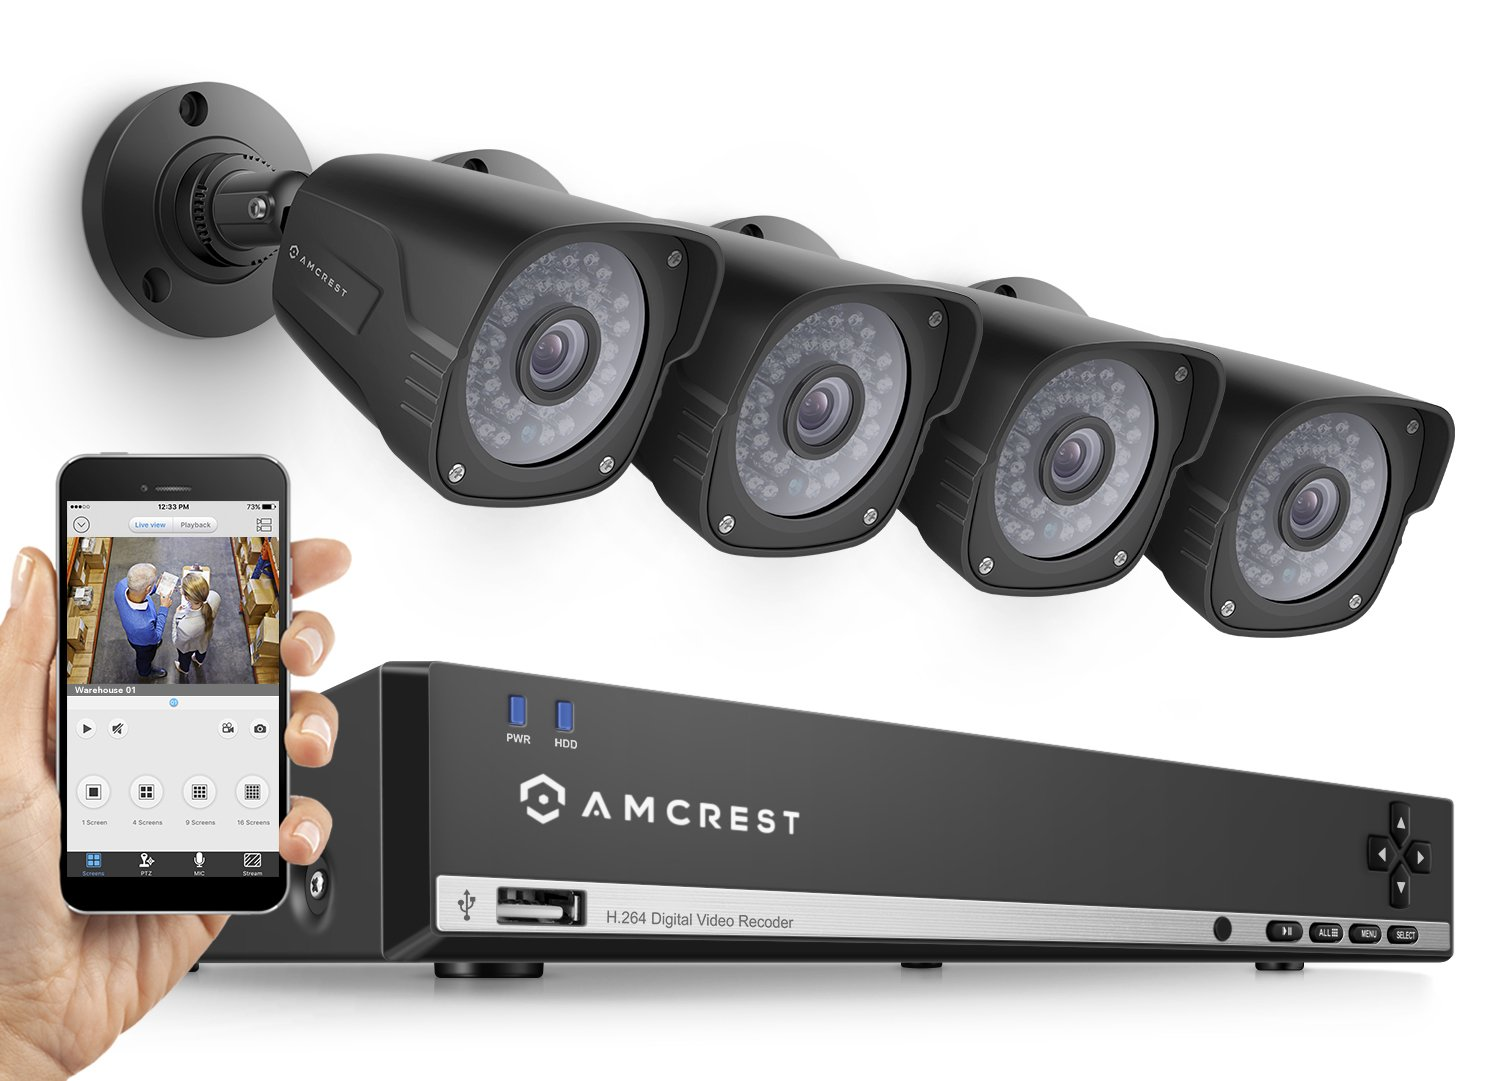 Amcrest UltraHD 3MP 4CH Video Security System - Four 2048TVL 3.0-Megapixel Weatherproof IP66 Bullet Cameras, 114ft IR LED Night Vision, NO HDD Included, HD Over Analog/BNC, Smartphone View (Black)